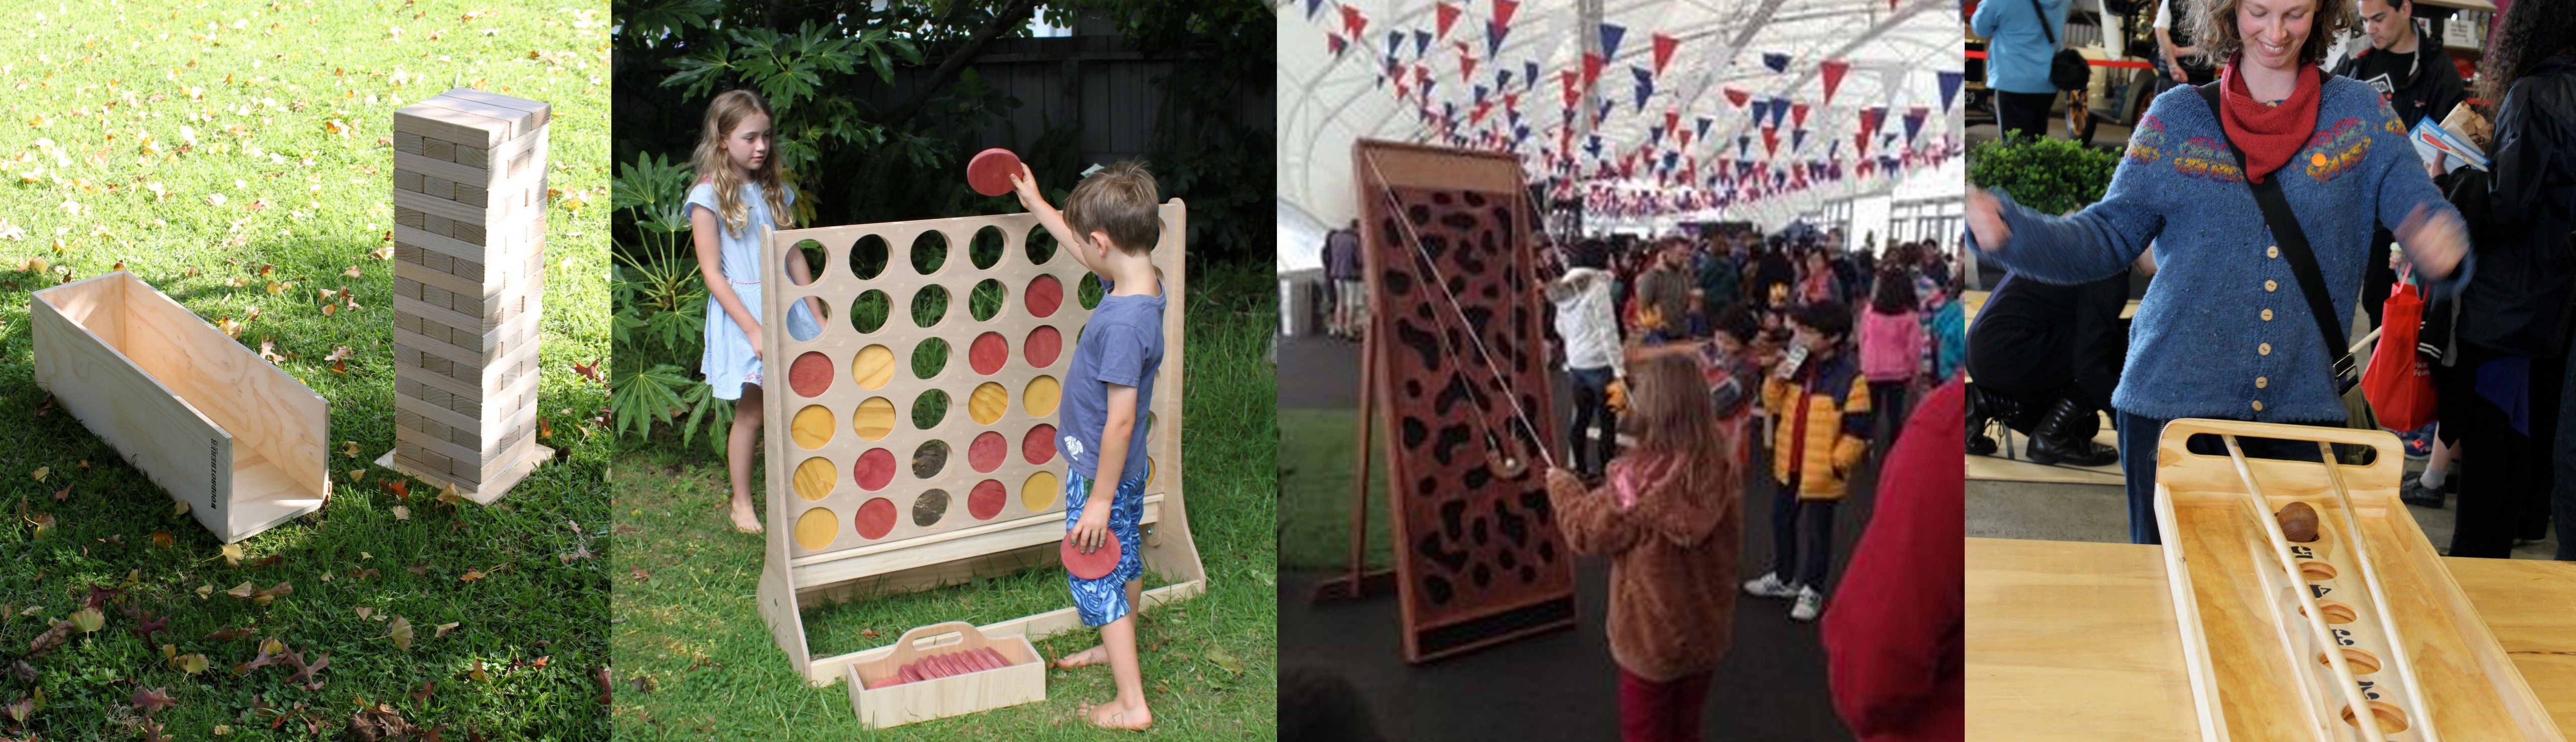 Wooden Games Hire For Weddings And Events Auckland Giant Connect 4 Jenga Quoits Giant Games Lawn Games Backyard Fun